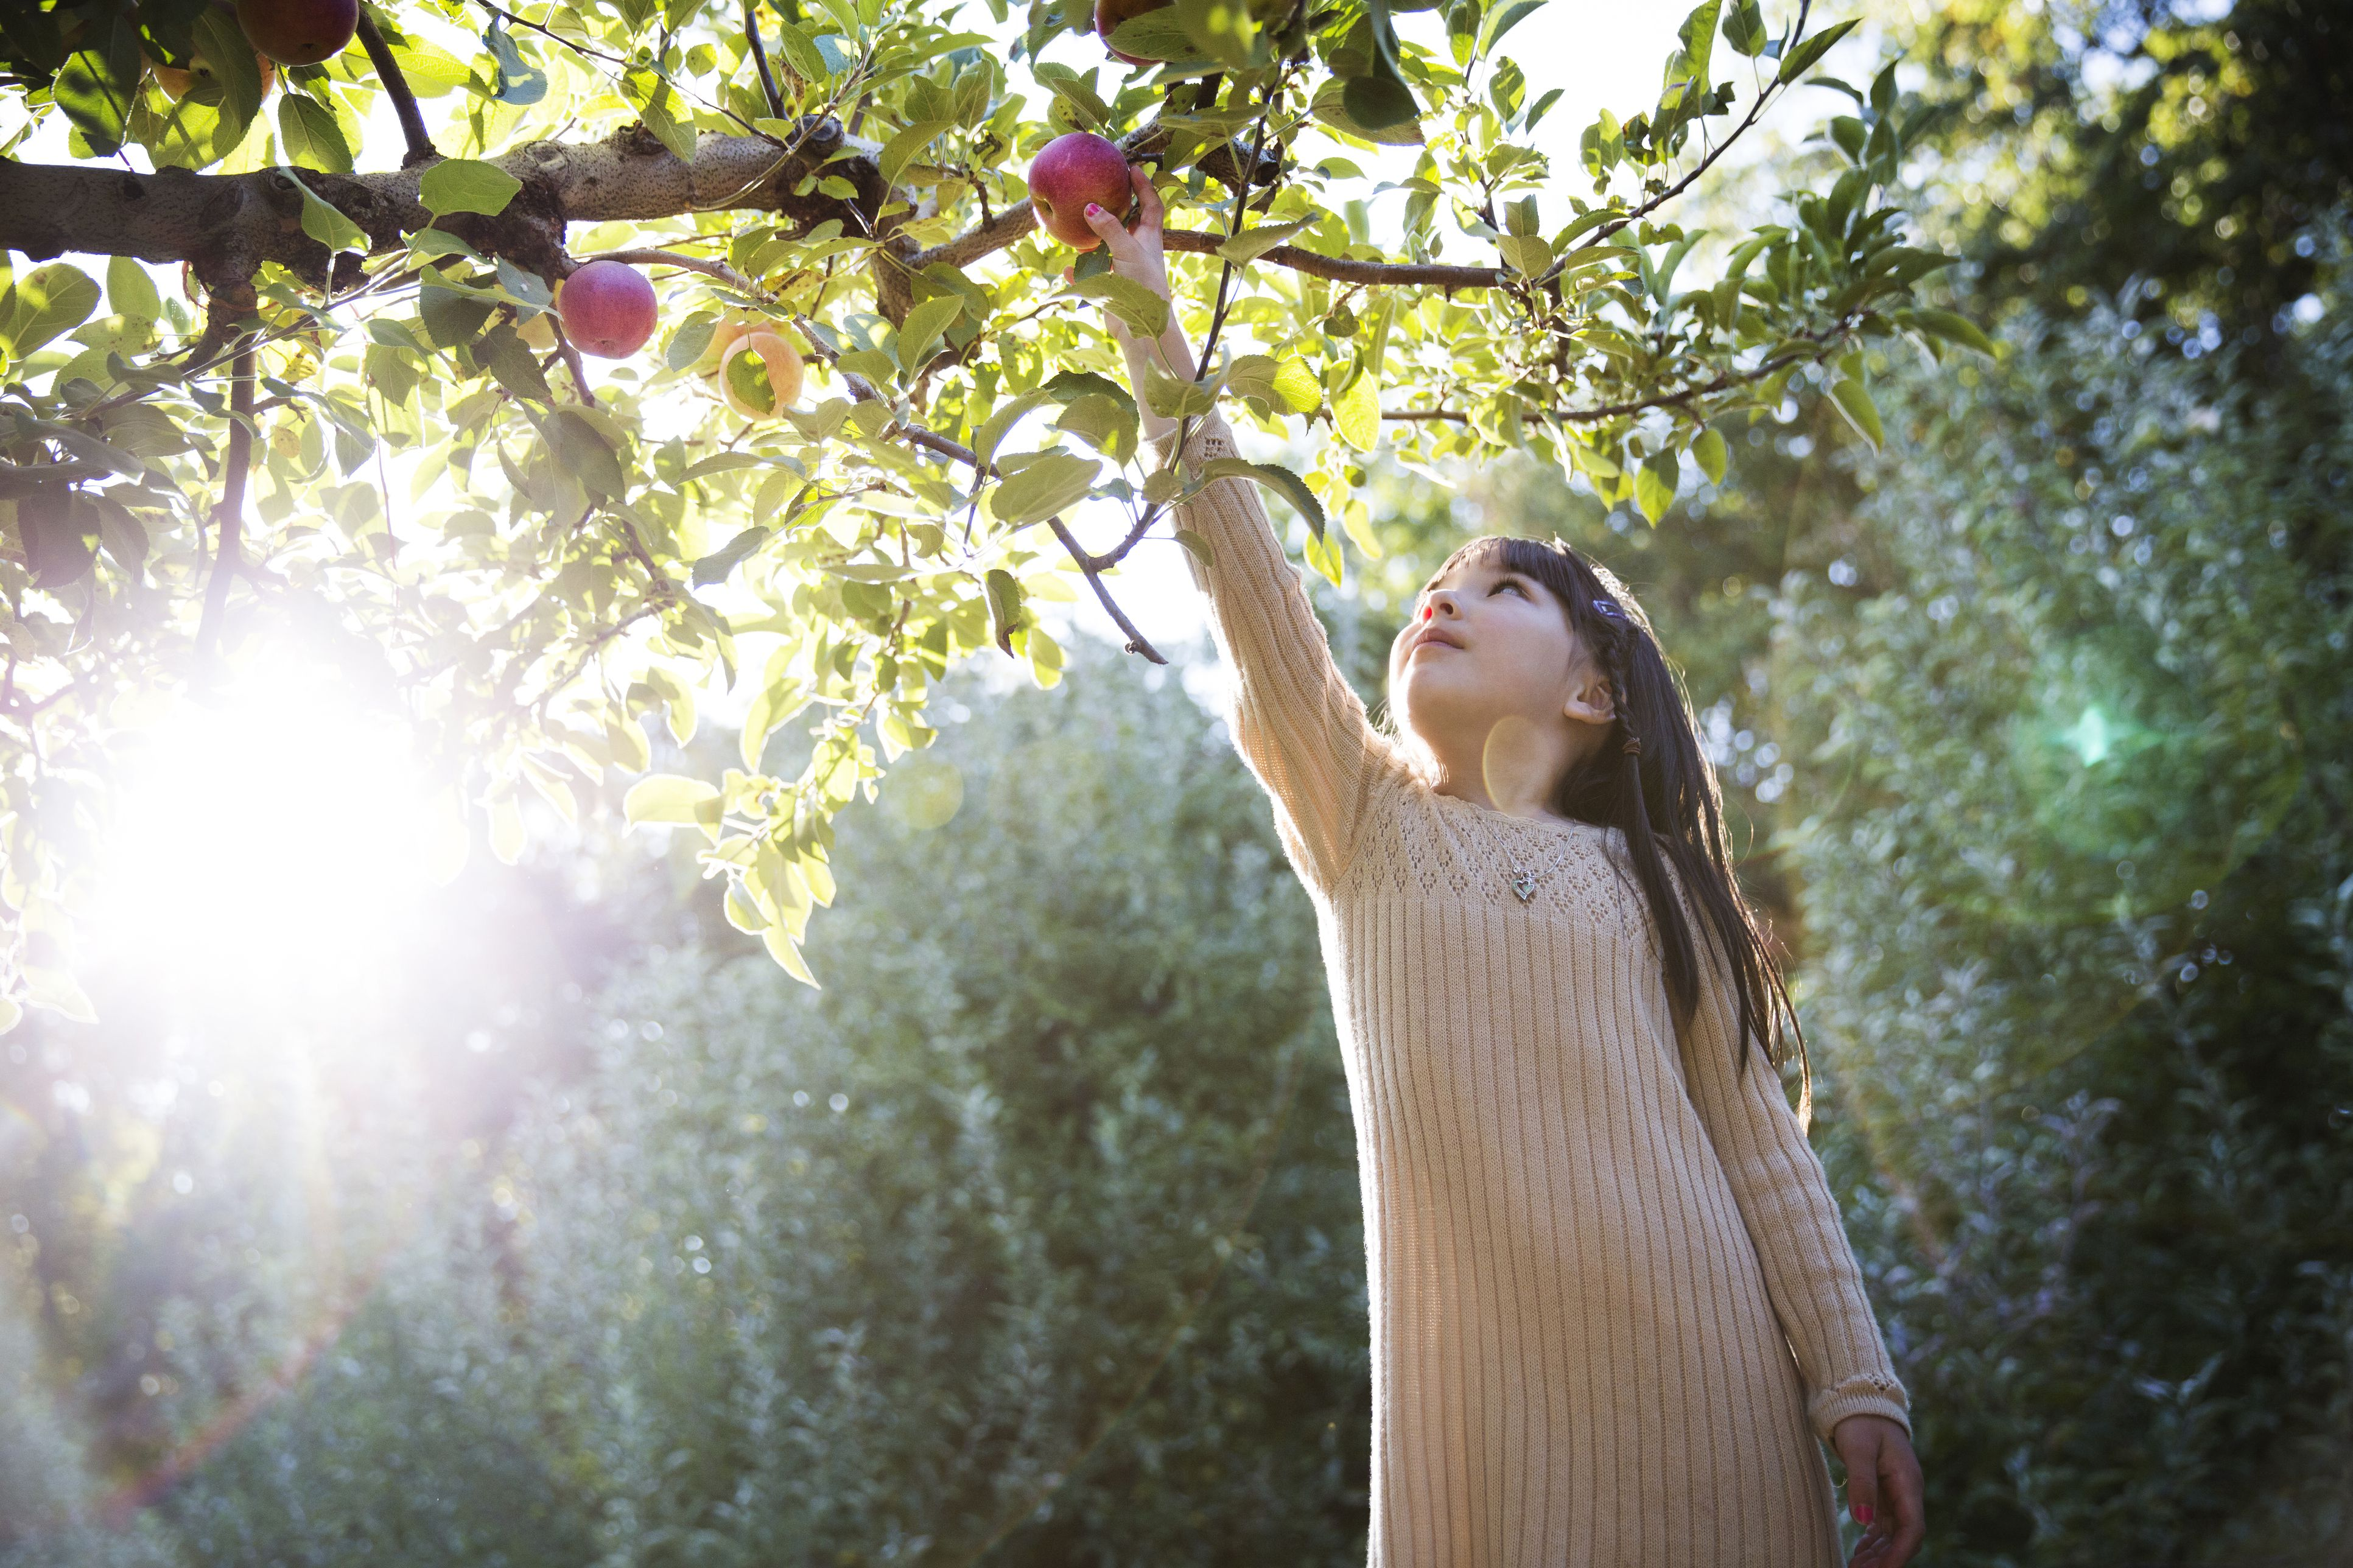 Girl picking apple while harvesting in orchard